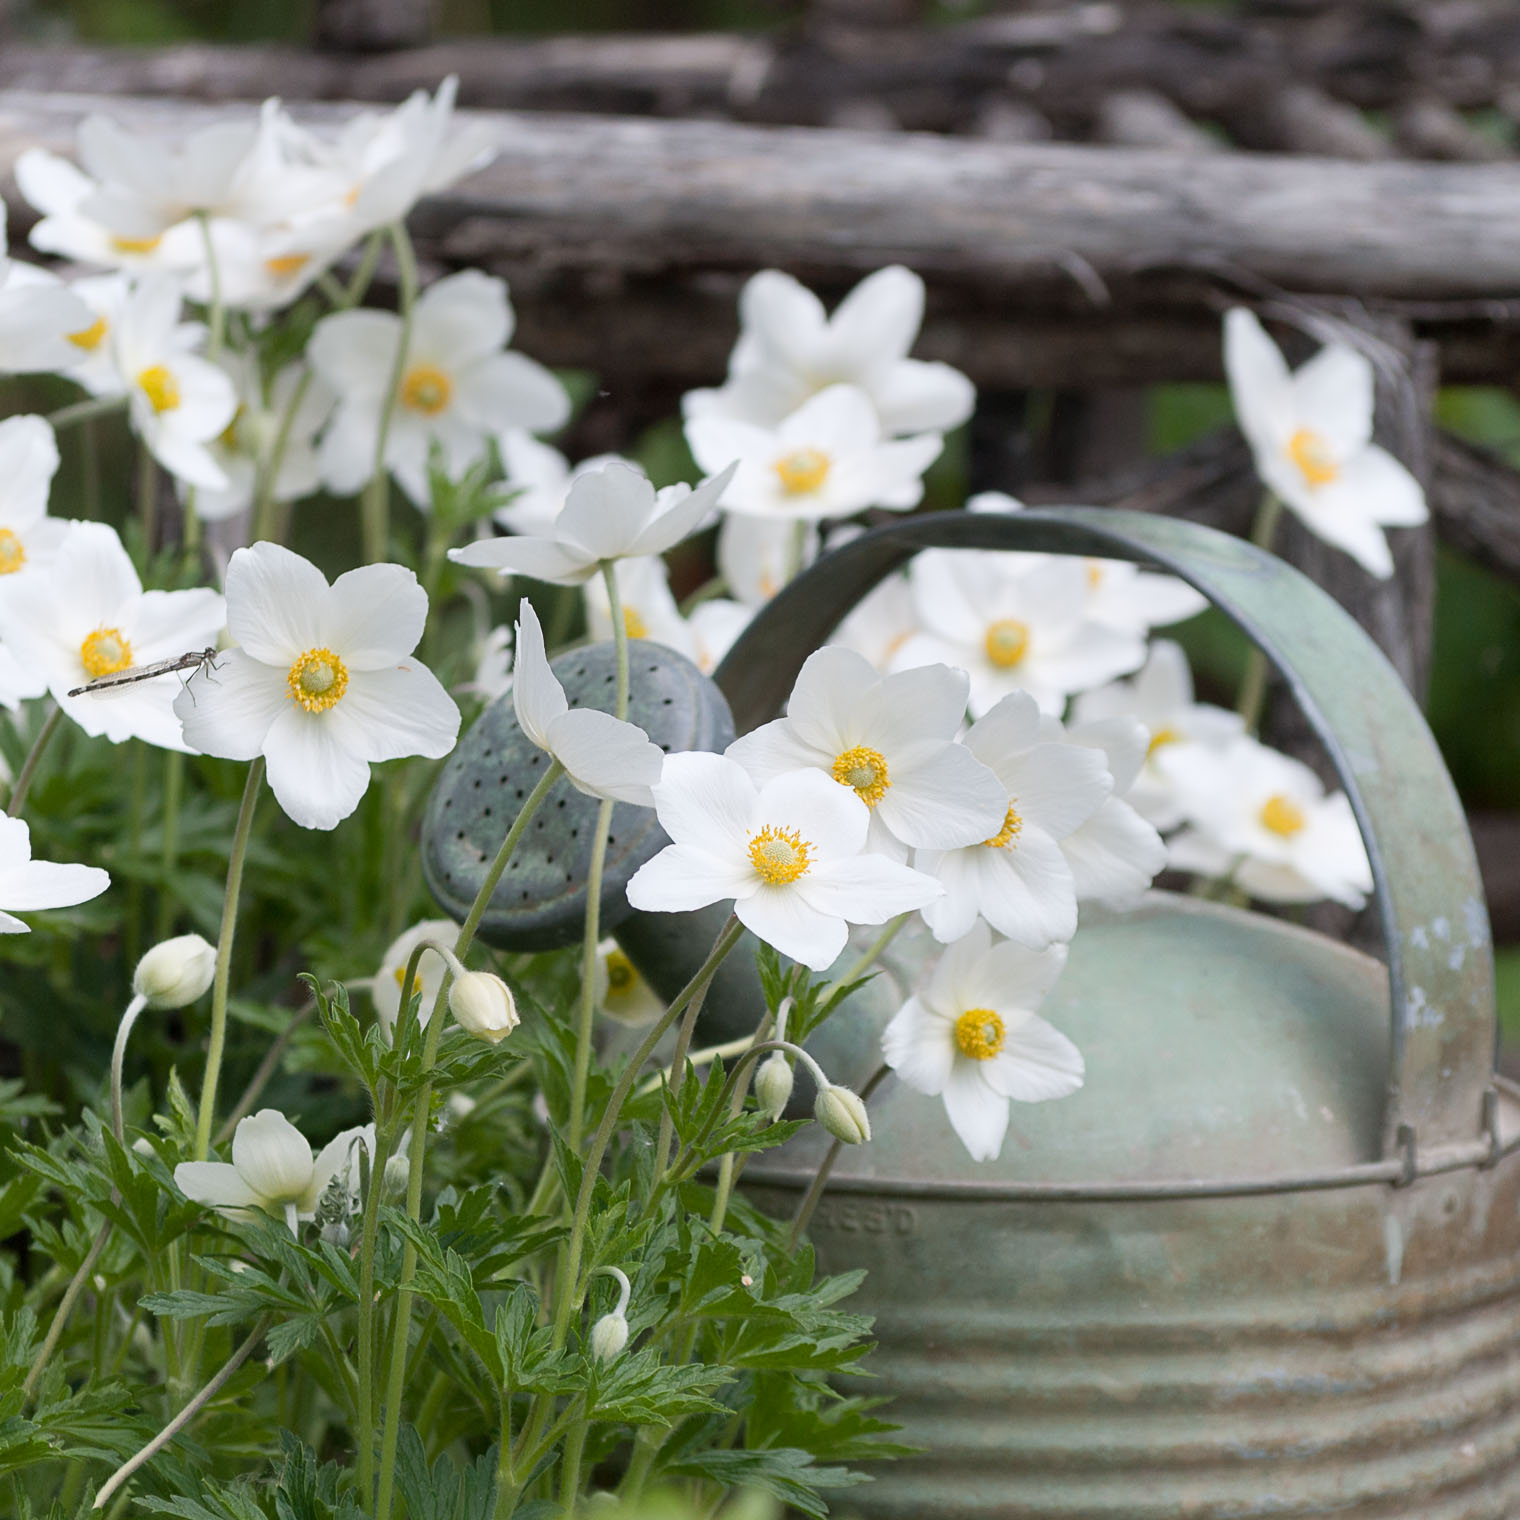 Hope Springs Eternal, Anemone Bulbs, Still Life, Flatlay, Barb Brookbank